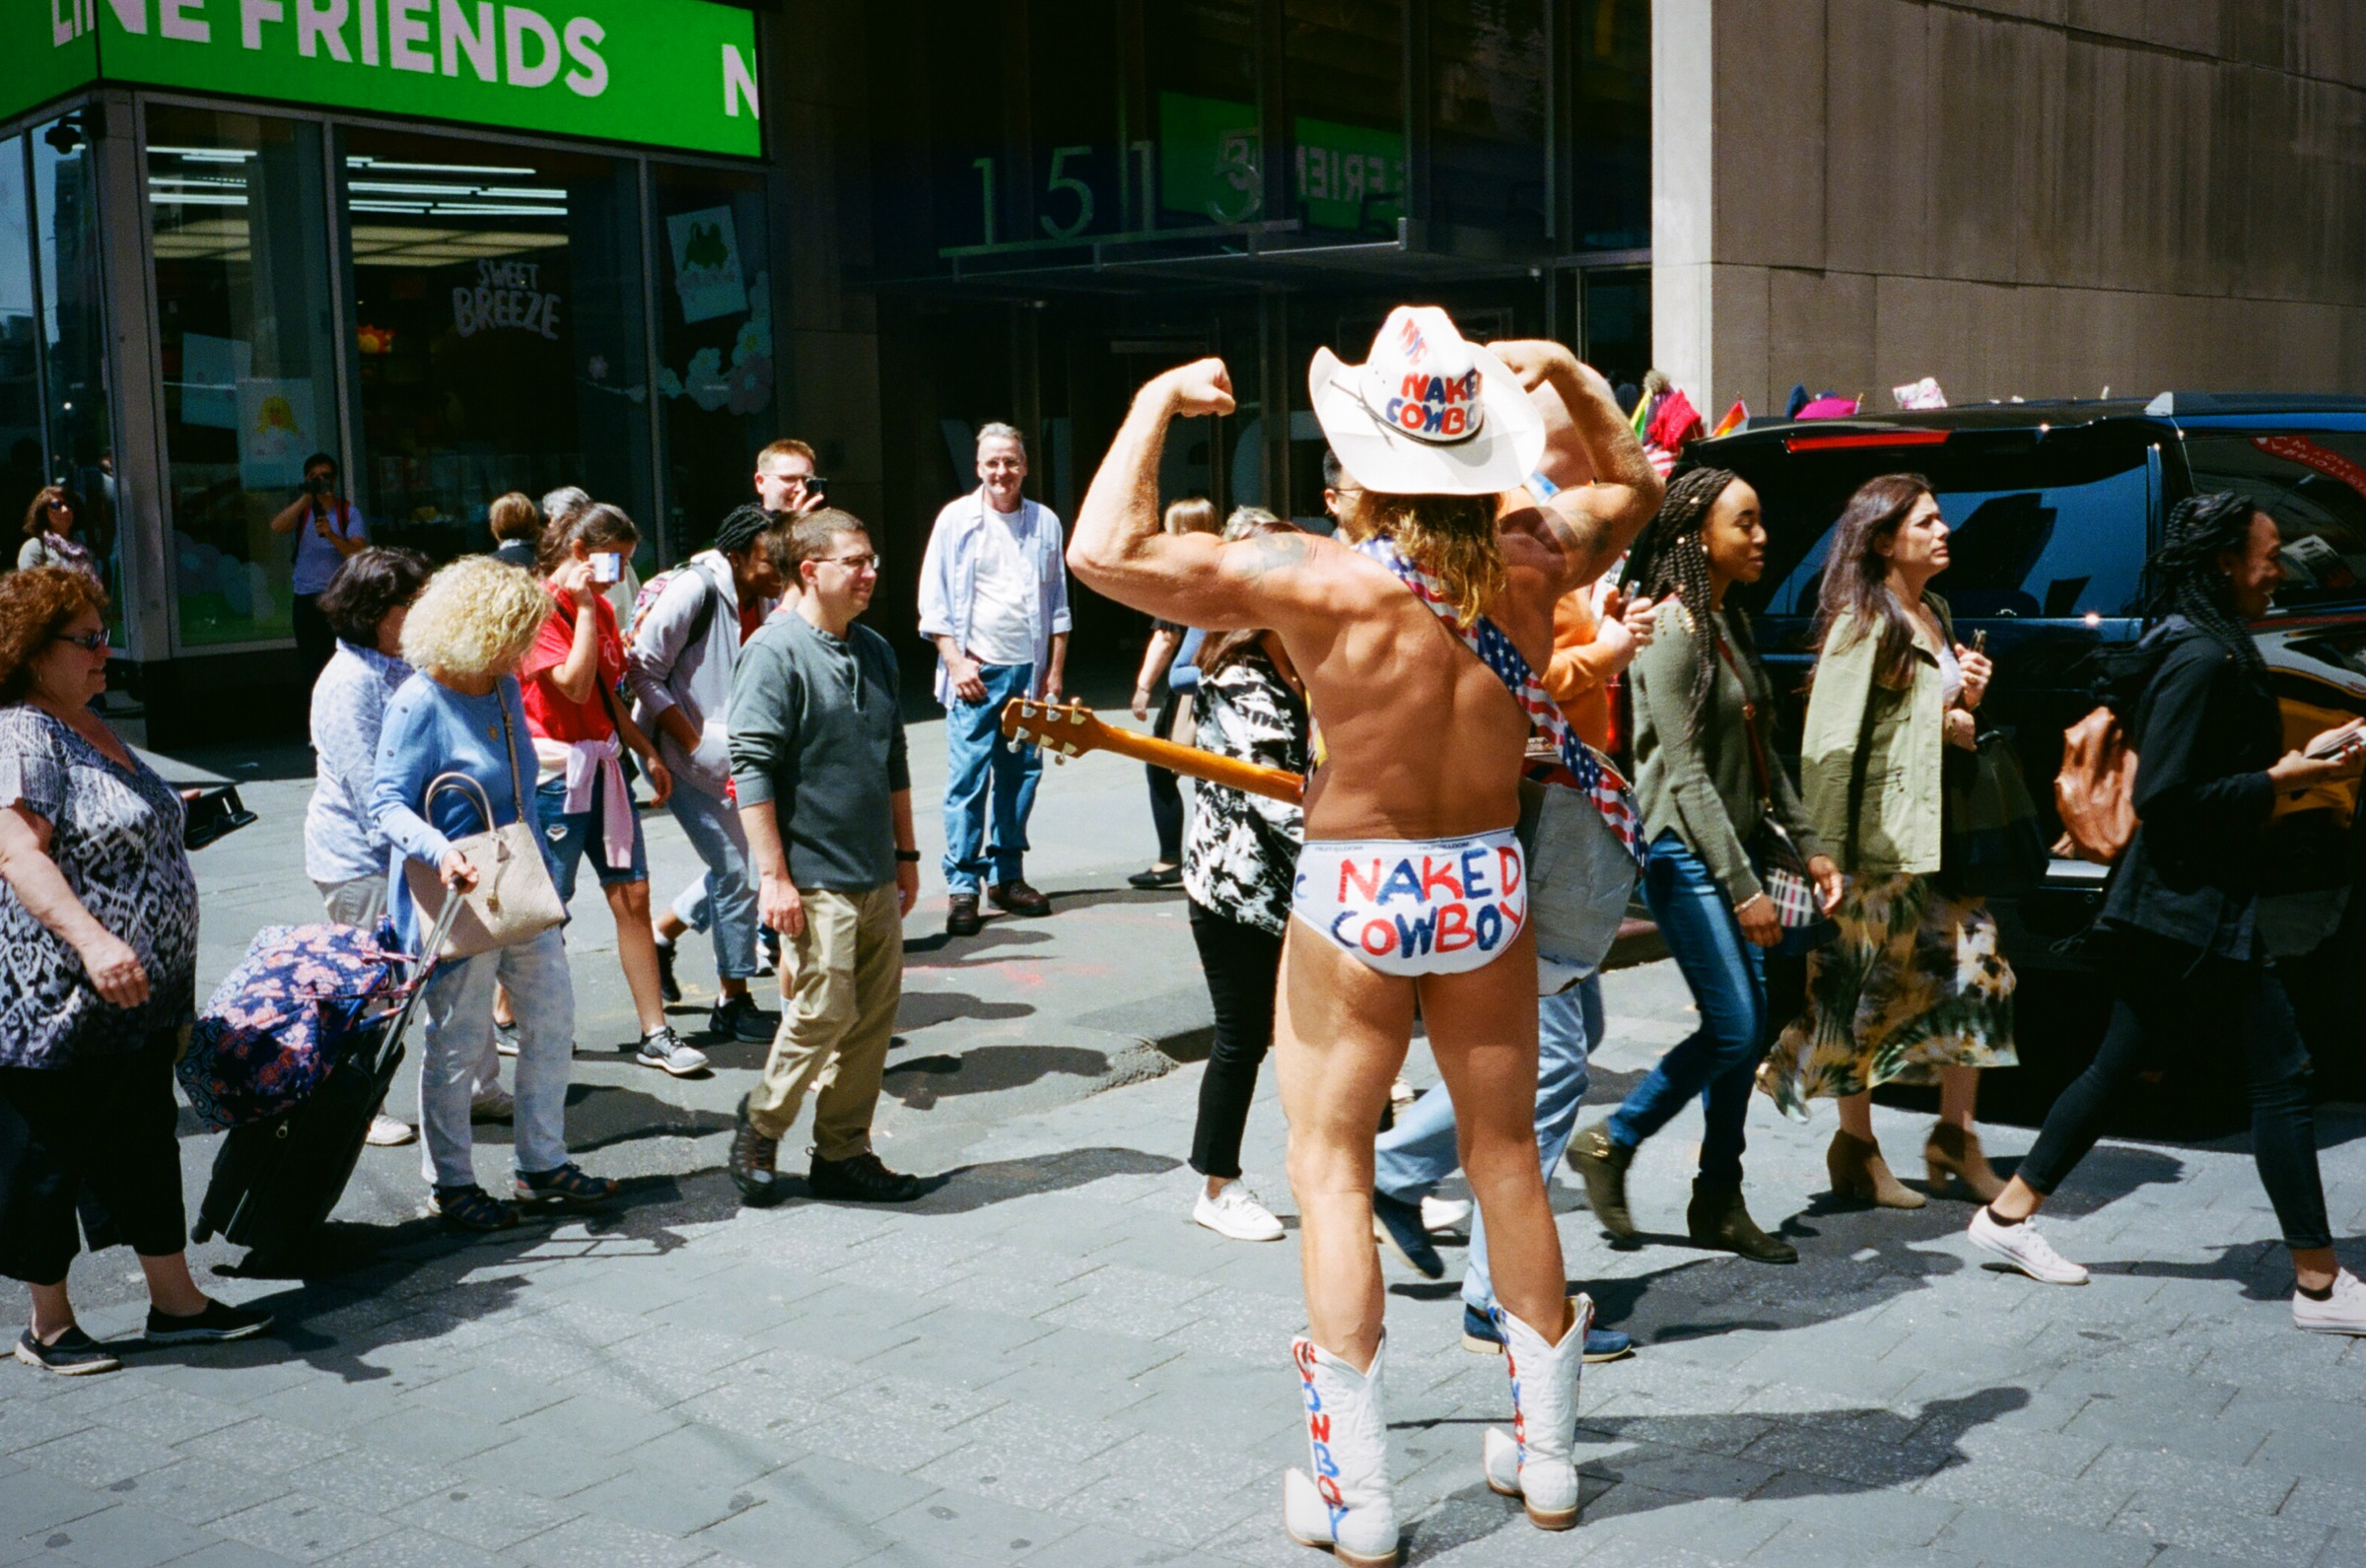 #667: The Naked Cowboy